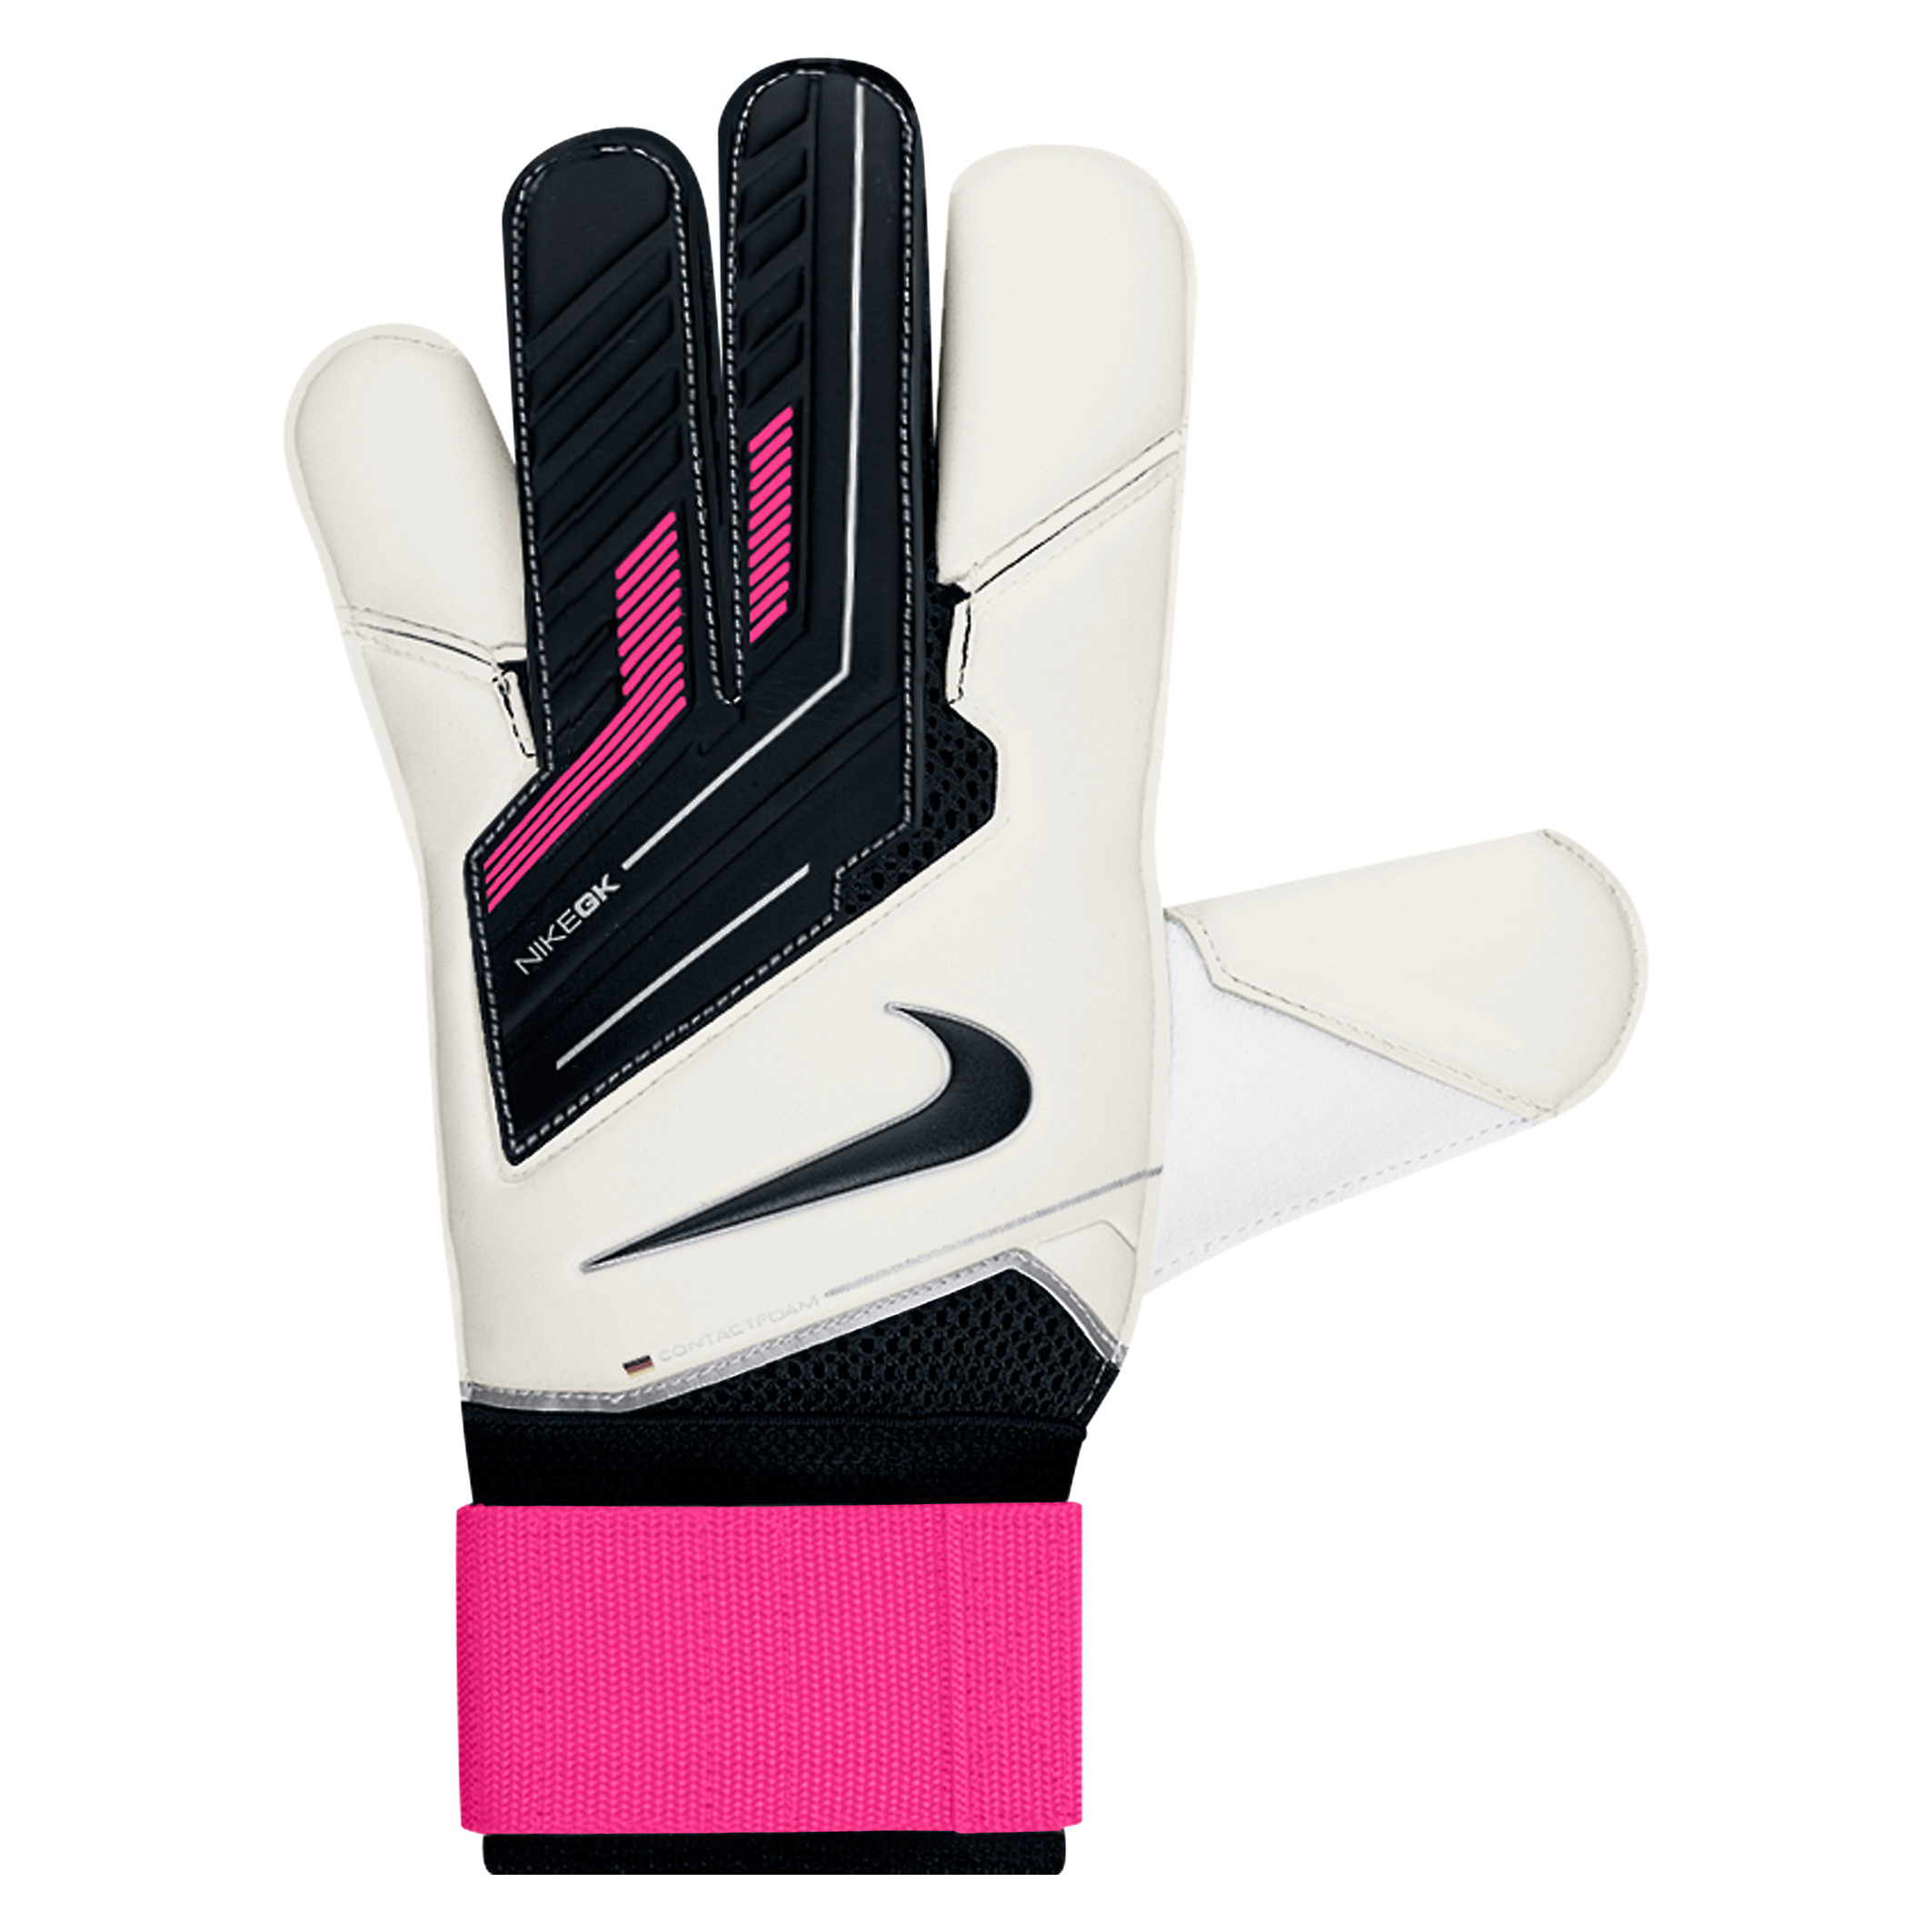 Nike Vapor Grip 3 Goalkeeper Gloves - White/Pink Flash/Black